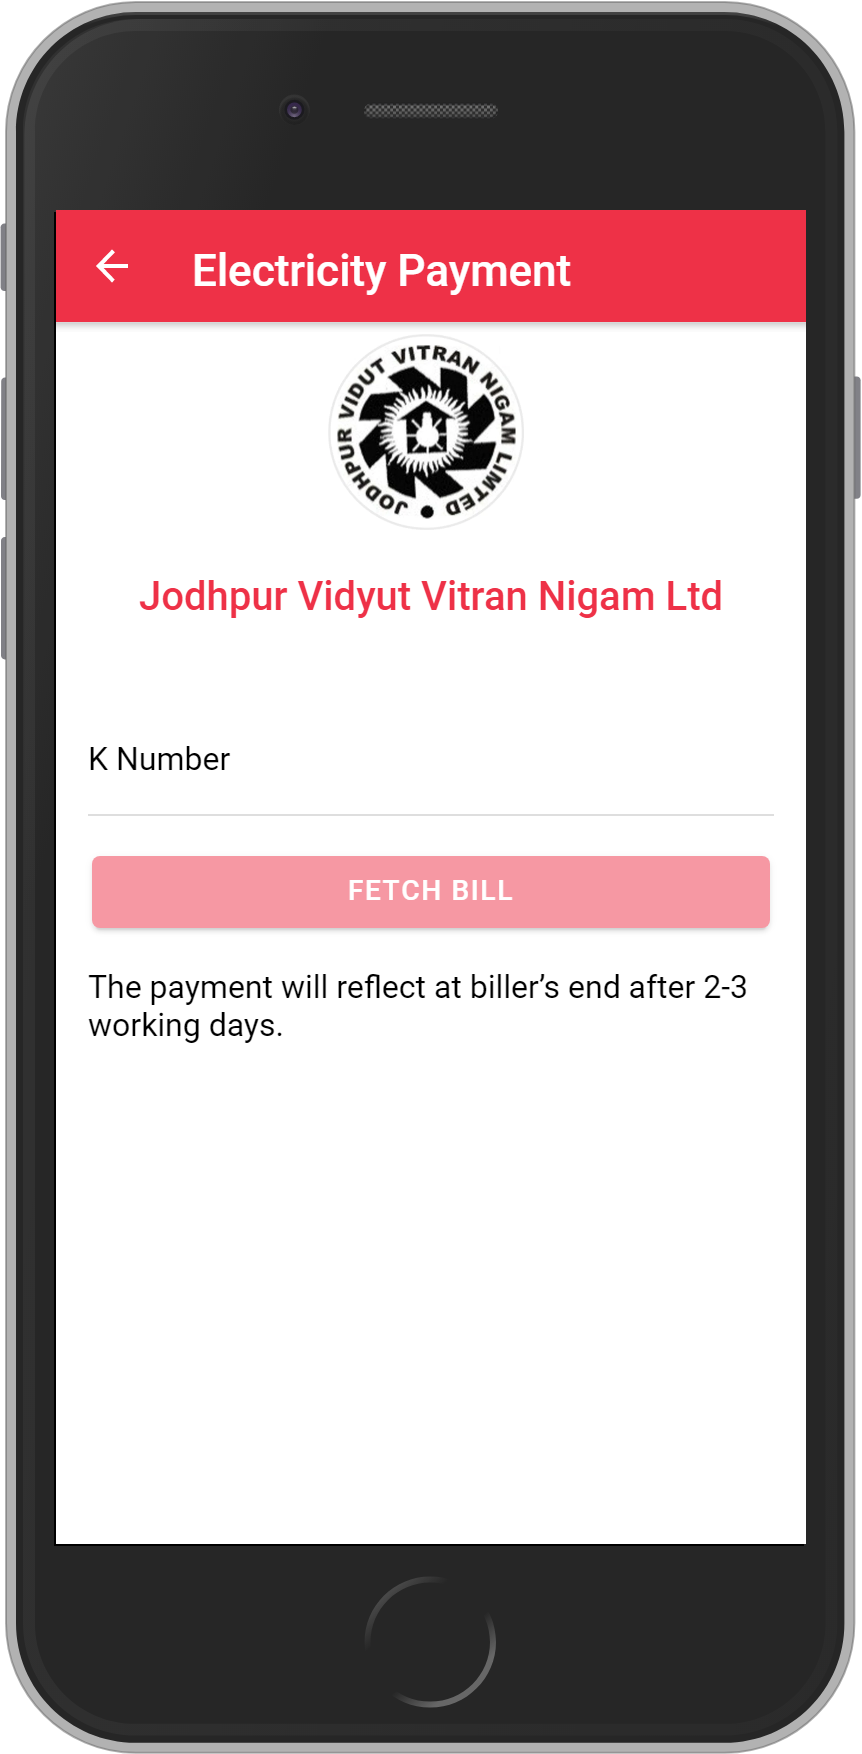 Get UNLIMITED <b>0.1%</b> CASHBACK on Jodhpur Vidyut Vitran Nigam Bill Payment.